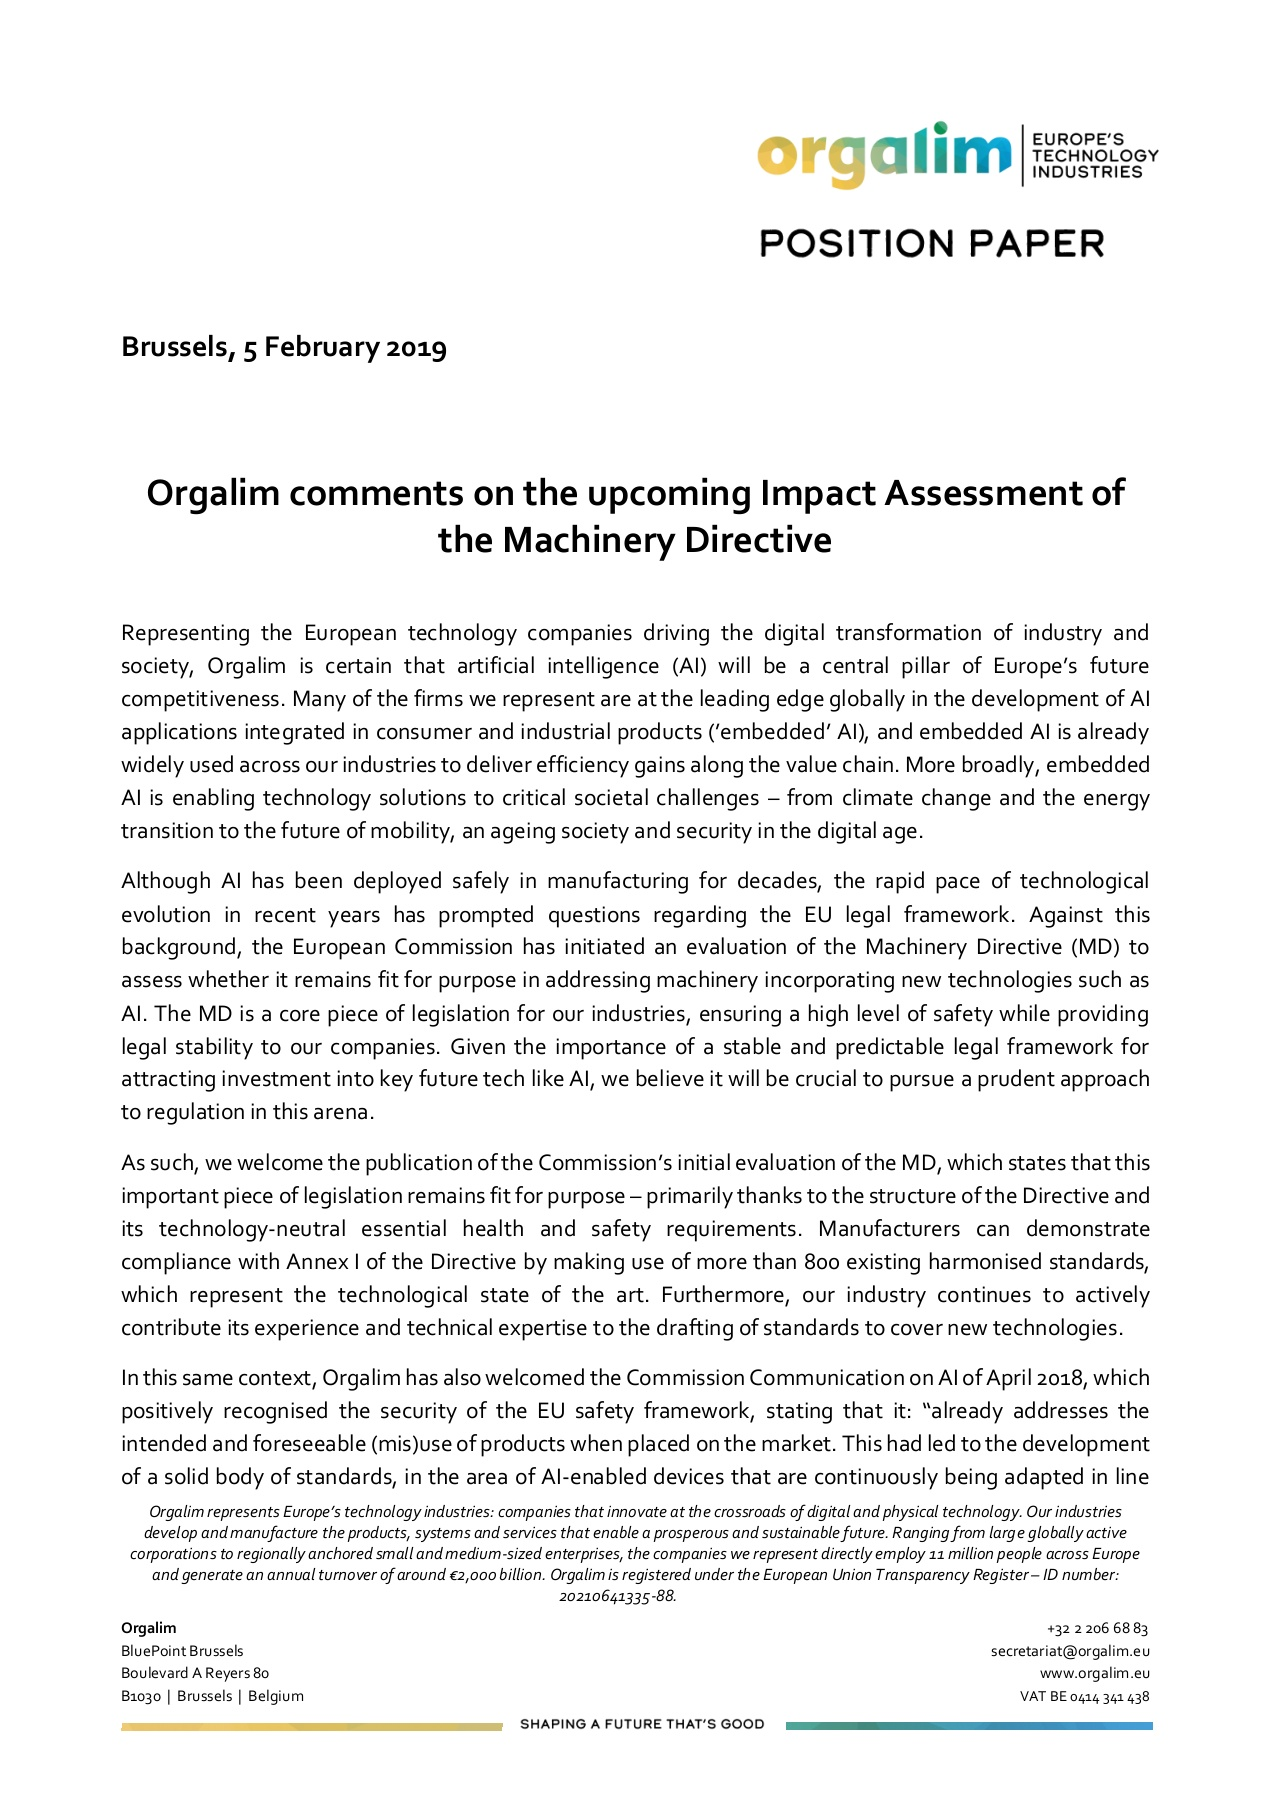 Orgalim Comments On The Upcoming Impact Assessment Of The Machinery